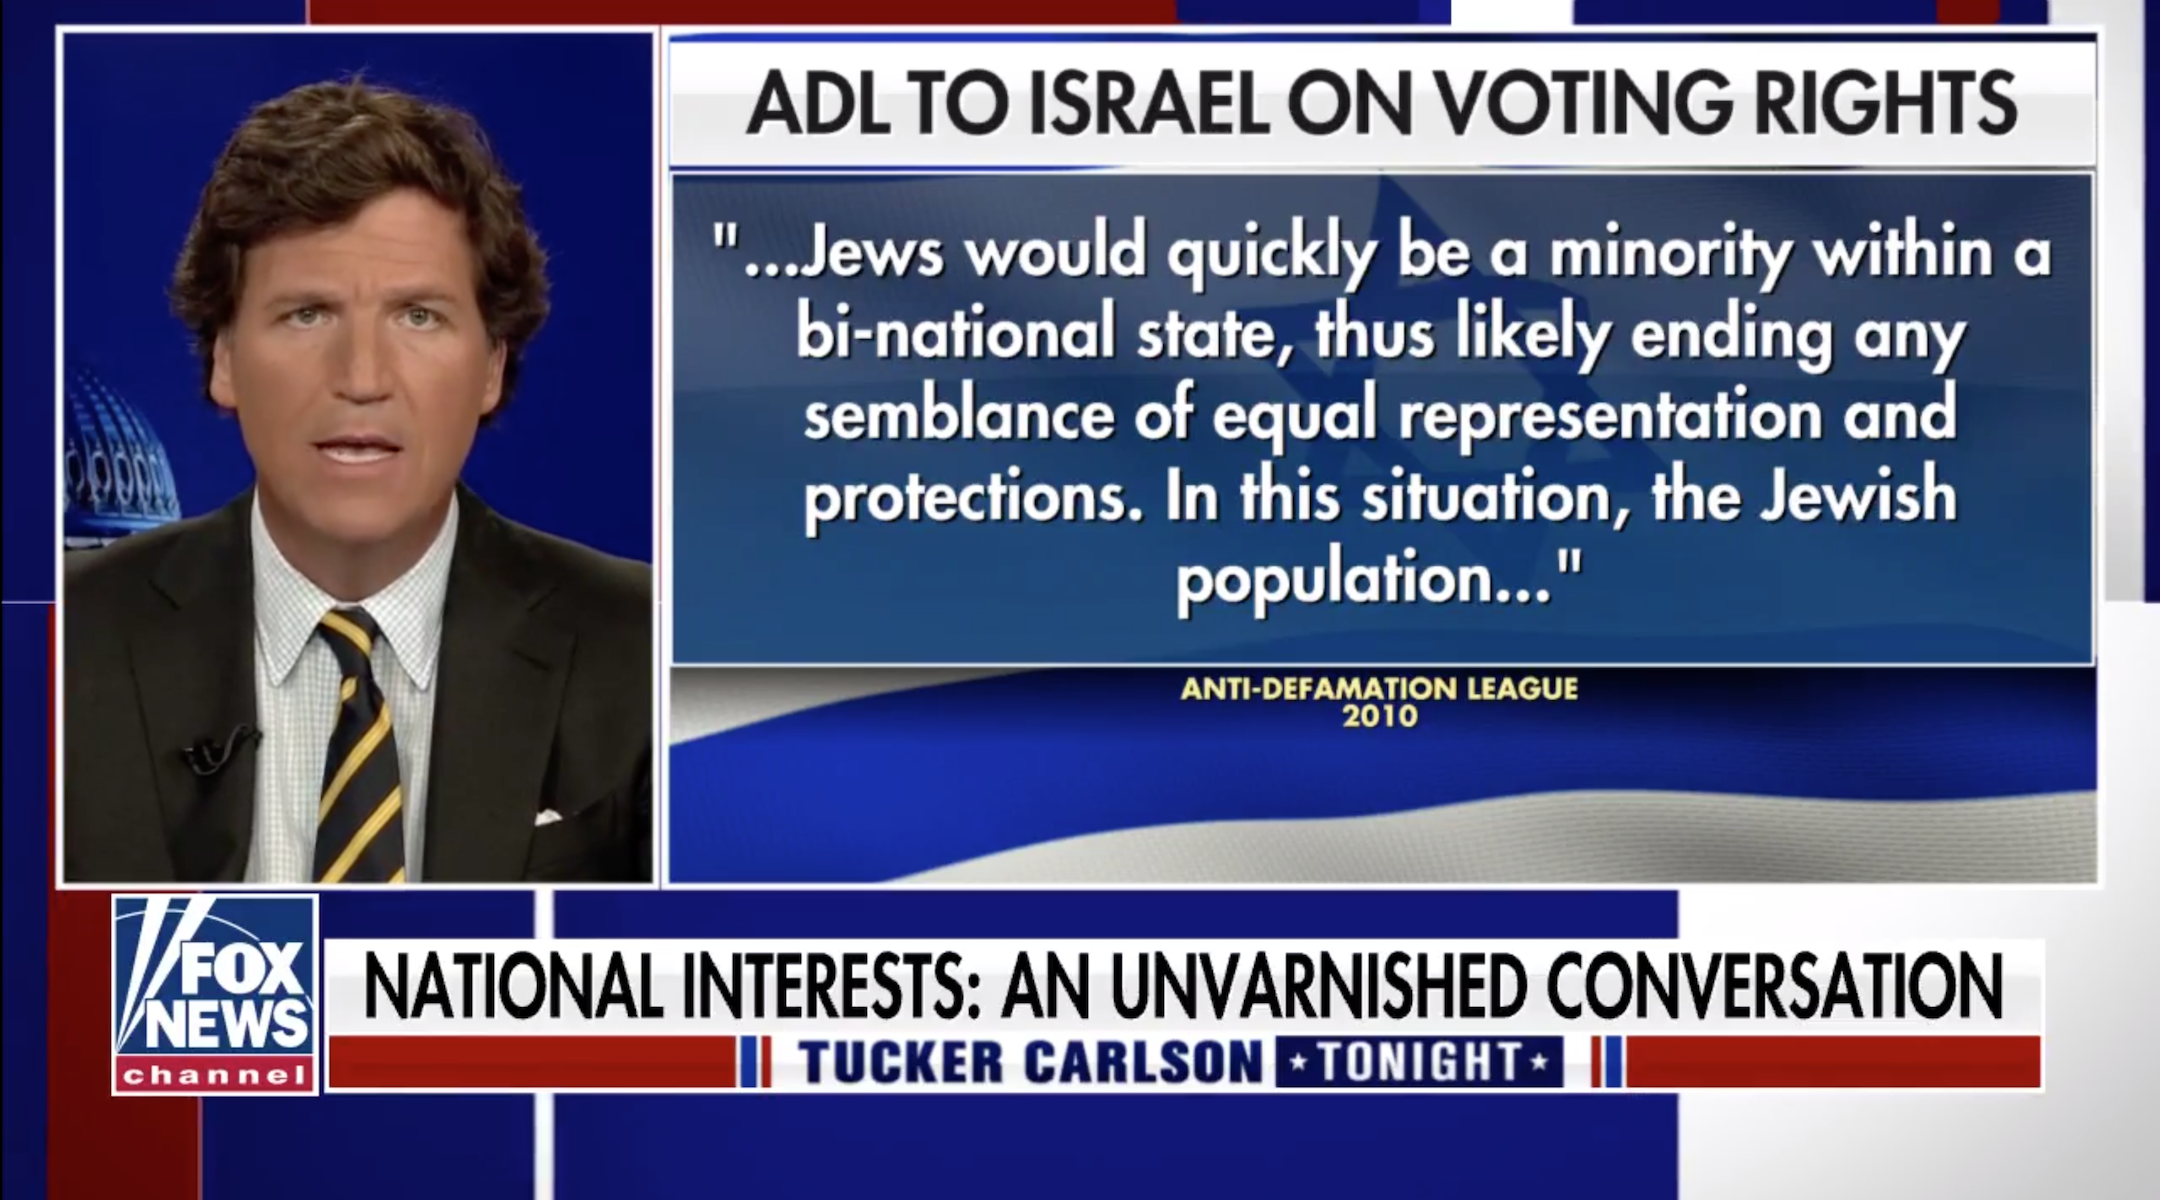 Tucker Carlson took aim at the Anti-Defamation League in his monologue Monday. (Screen shot)